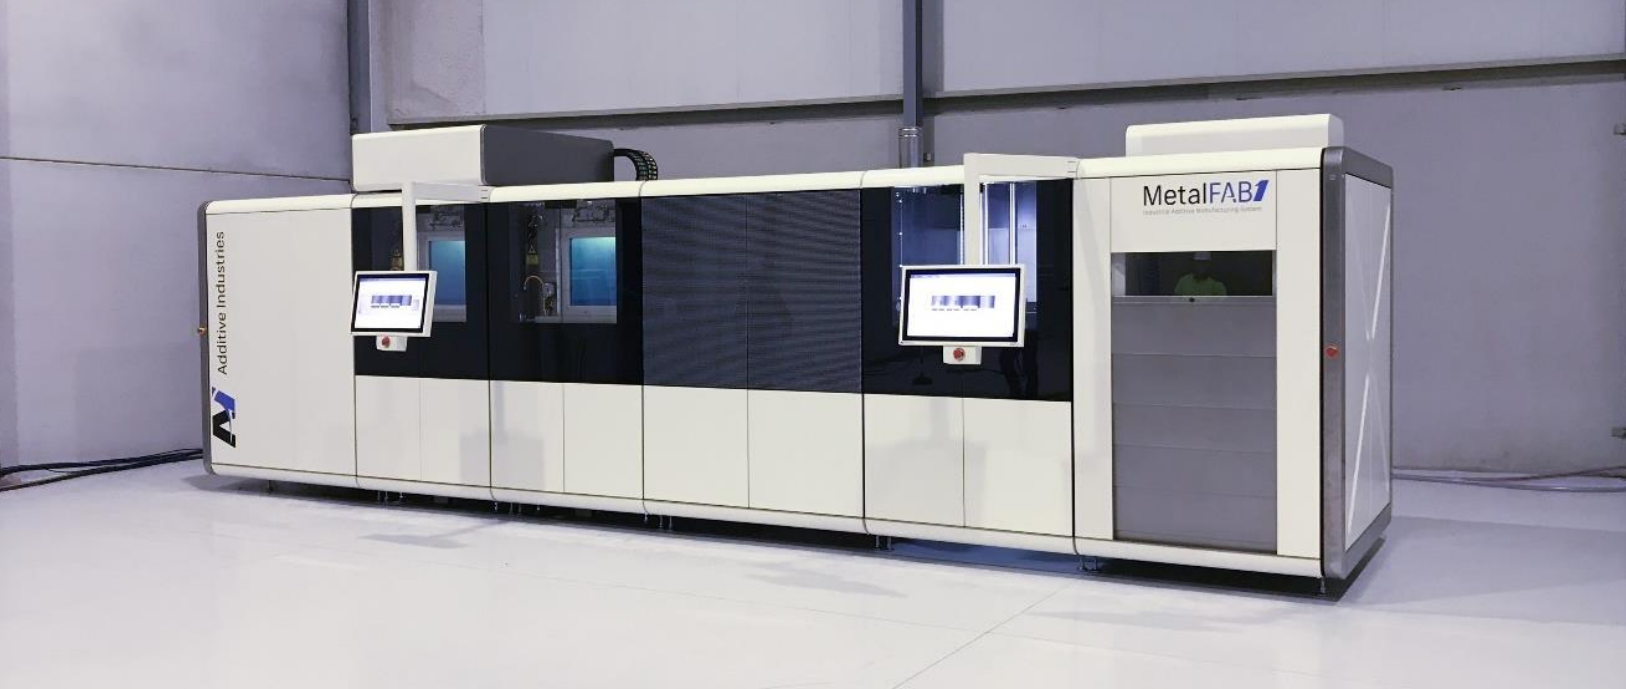 The MetalFAB1 3D printer. Photo via Additive Industries.